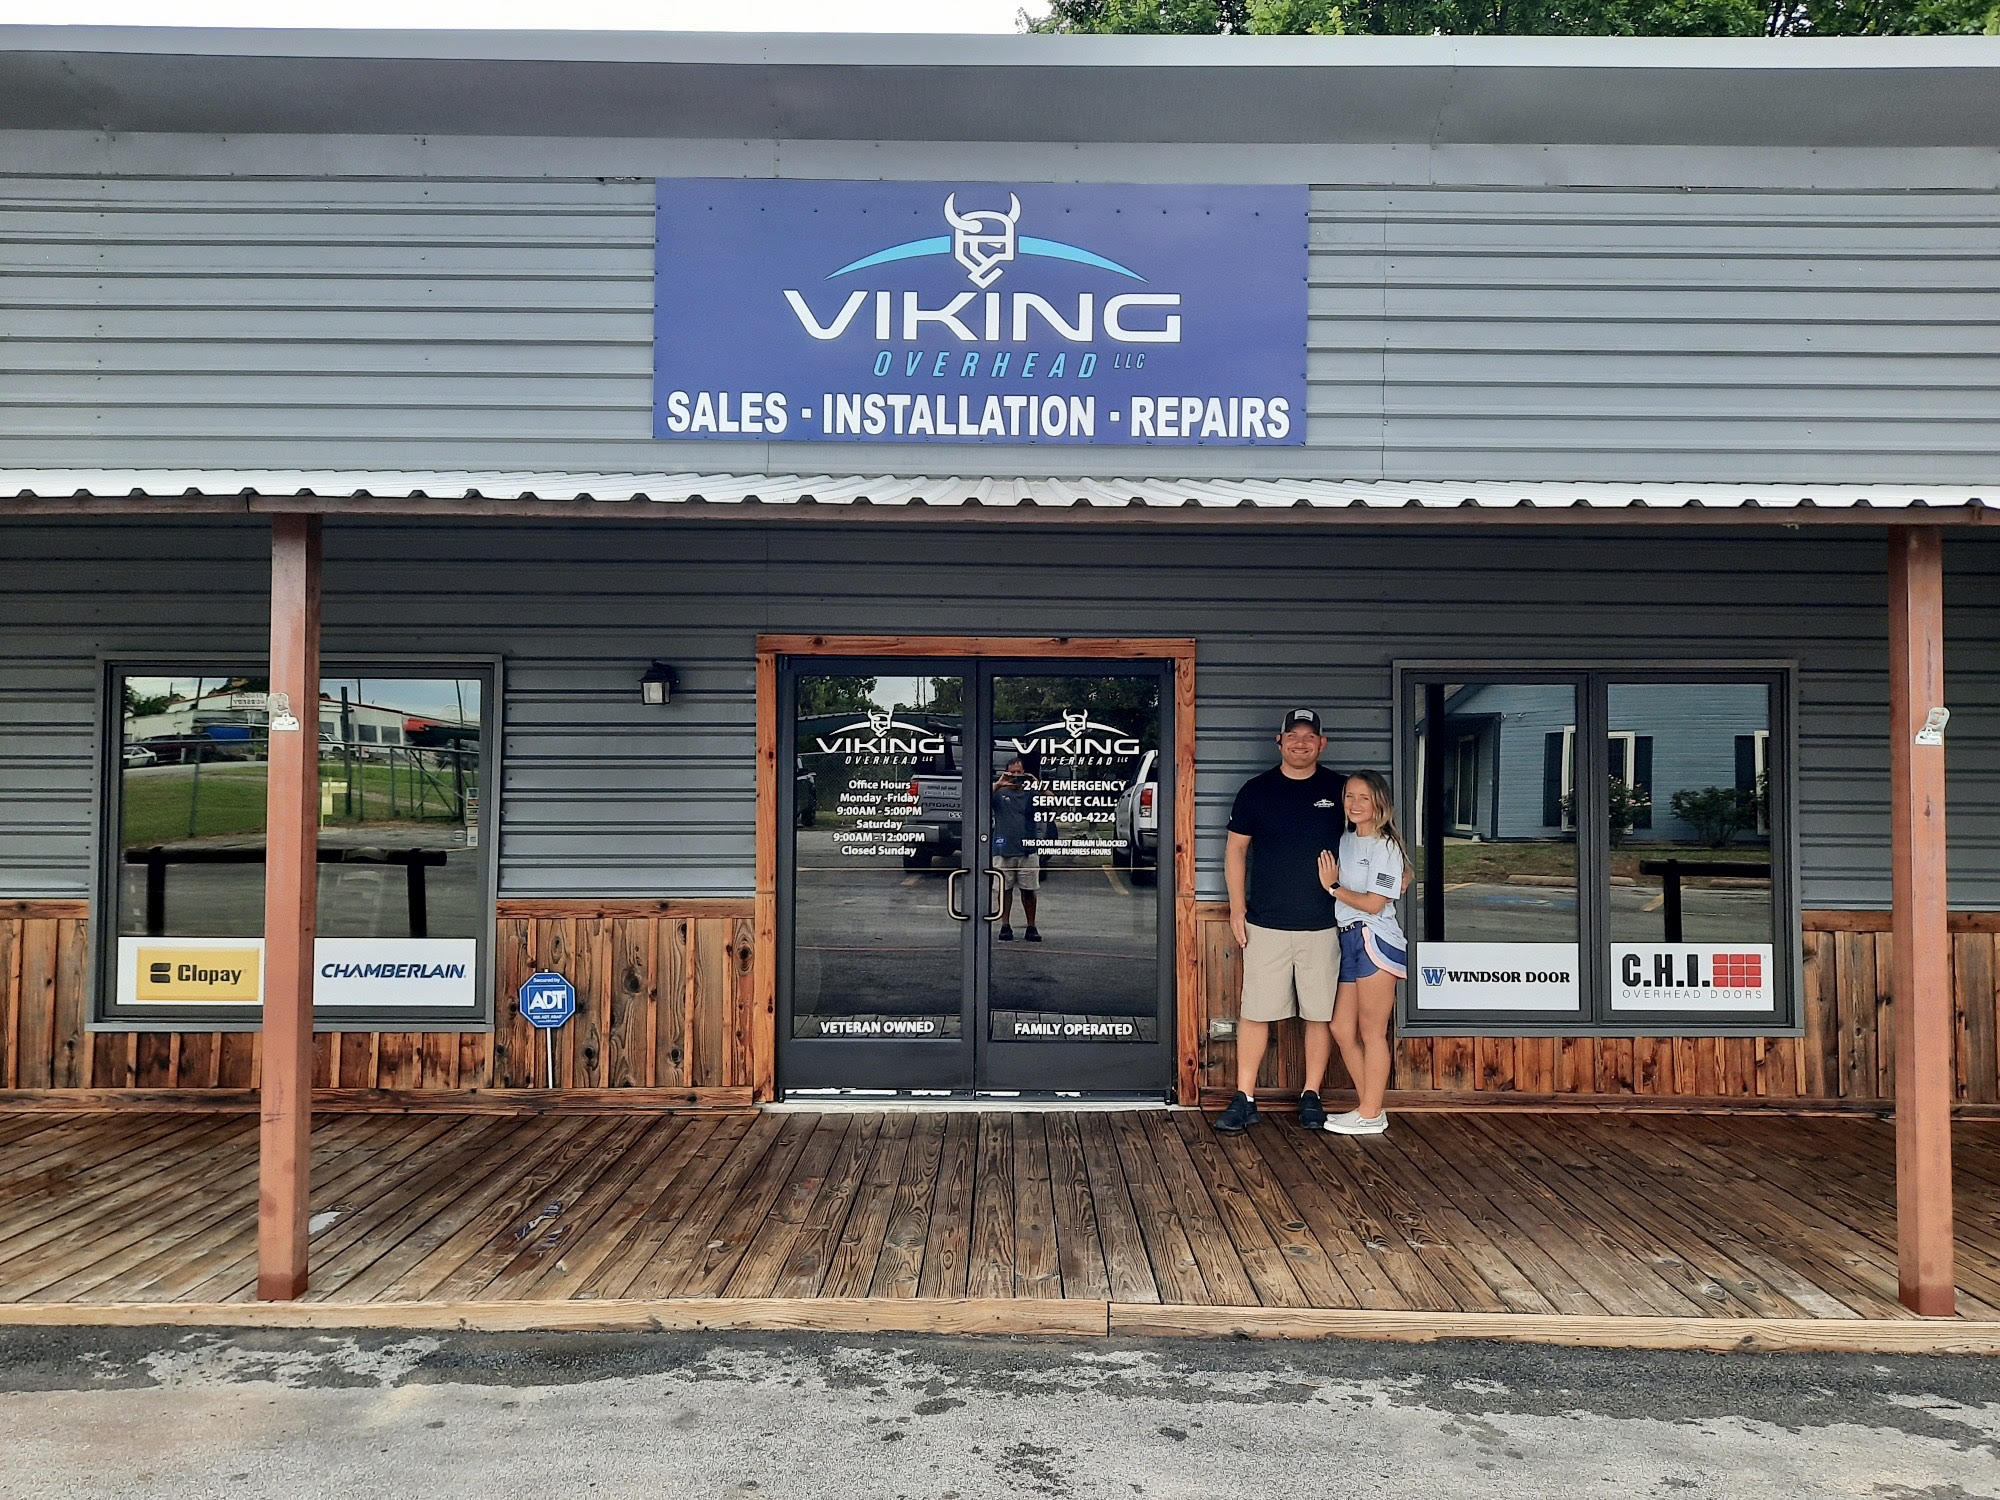 Viking Overhead Opens New Showroom and Runs Massive Promos on all Door Orders